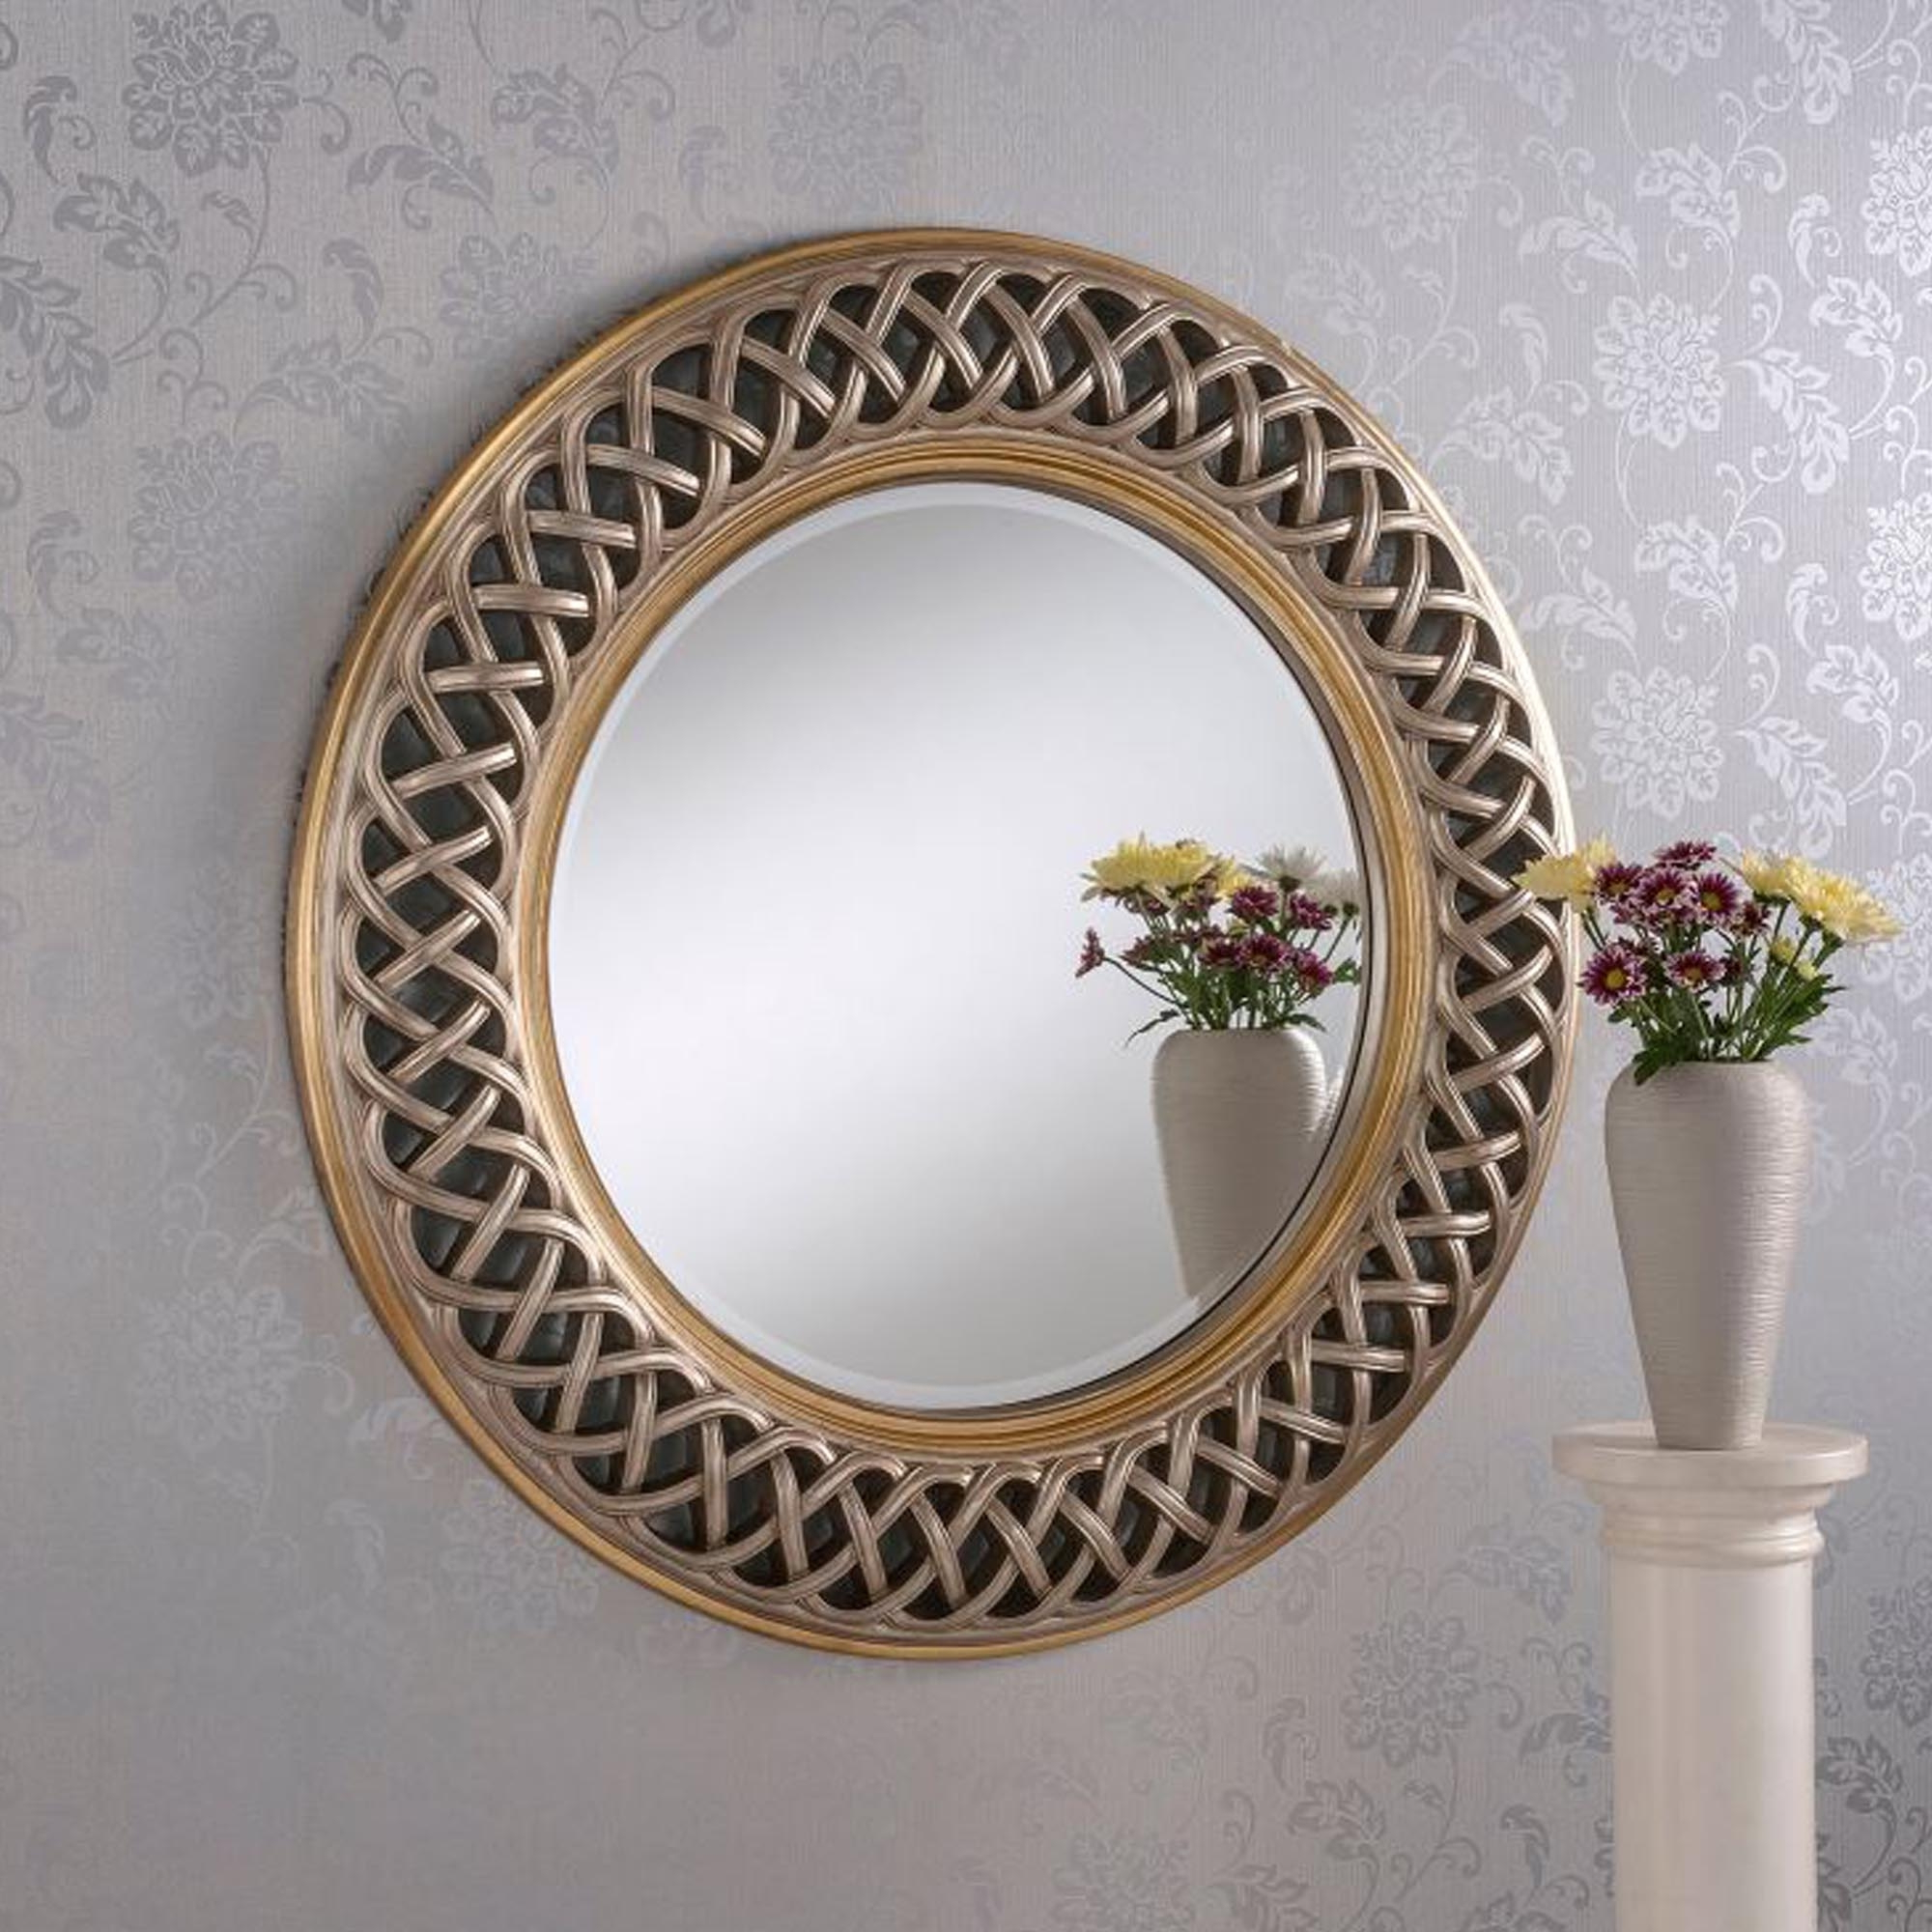 Well Known Decorative Wall Mirrors With Regard To Interlocking Lace Silver/gold Decorative Wall Mirror (View 18 of 20)